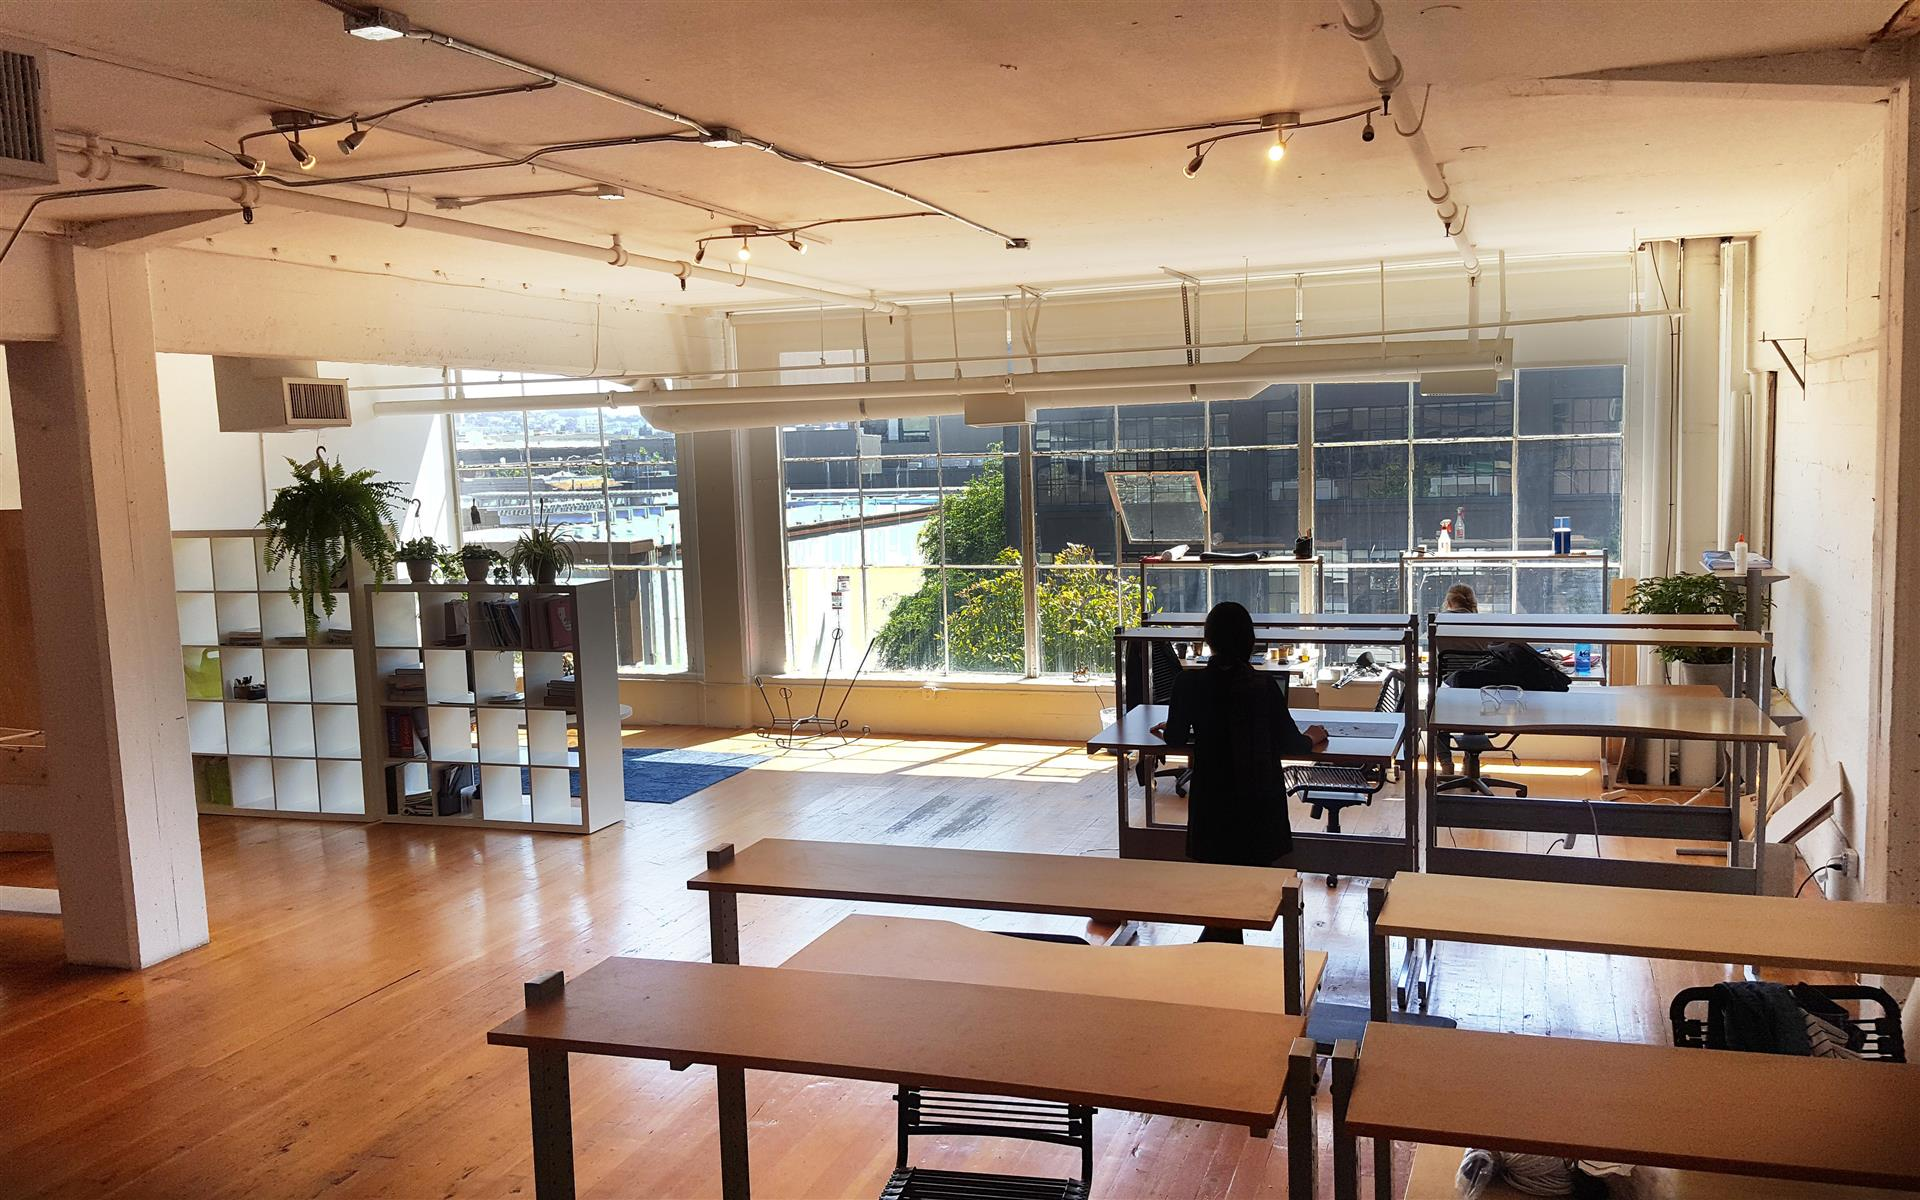 351 9th Street - Sunny Shared Office in SOMA! - Desk - Daily